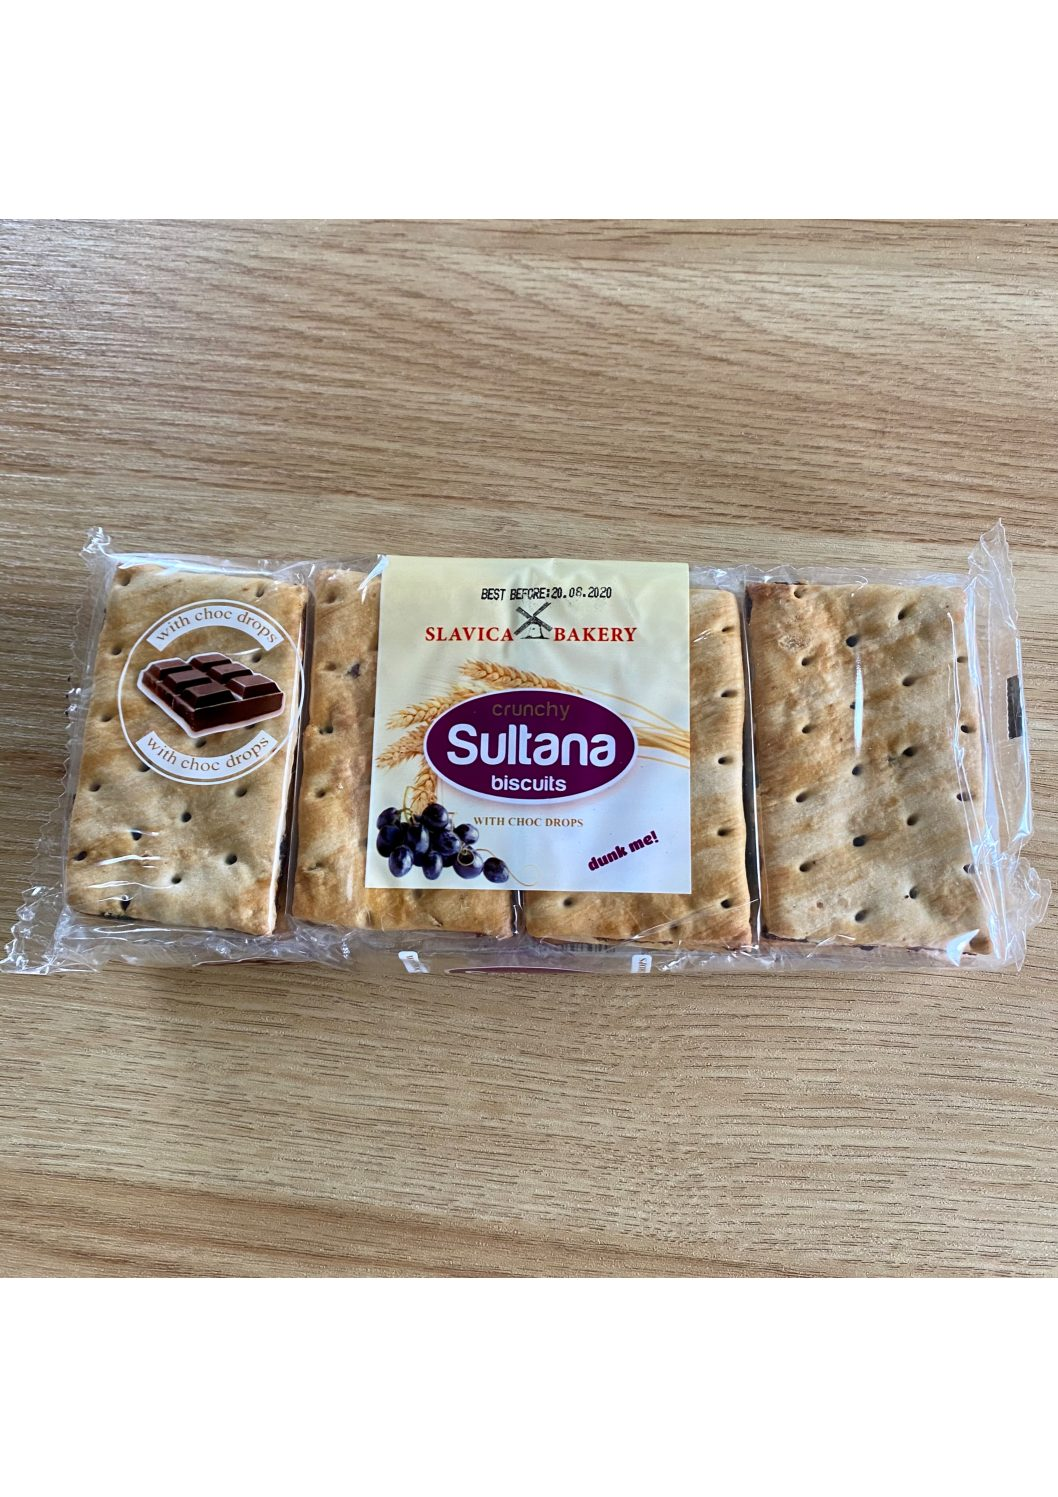 Slavica Bakery Sultana Biscuits with Chocolate Drops 270g